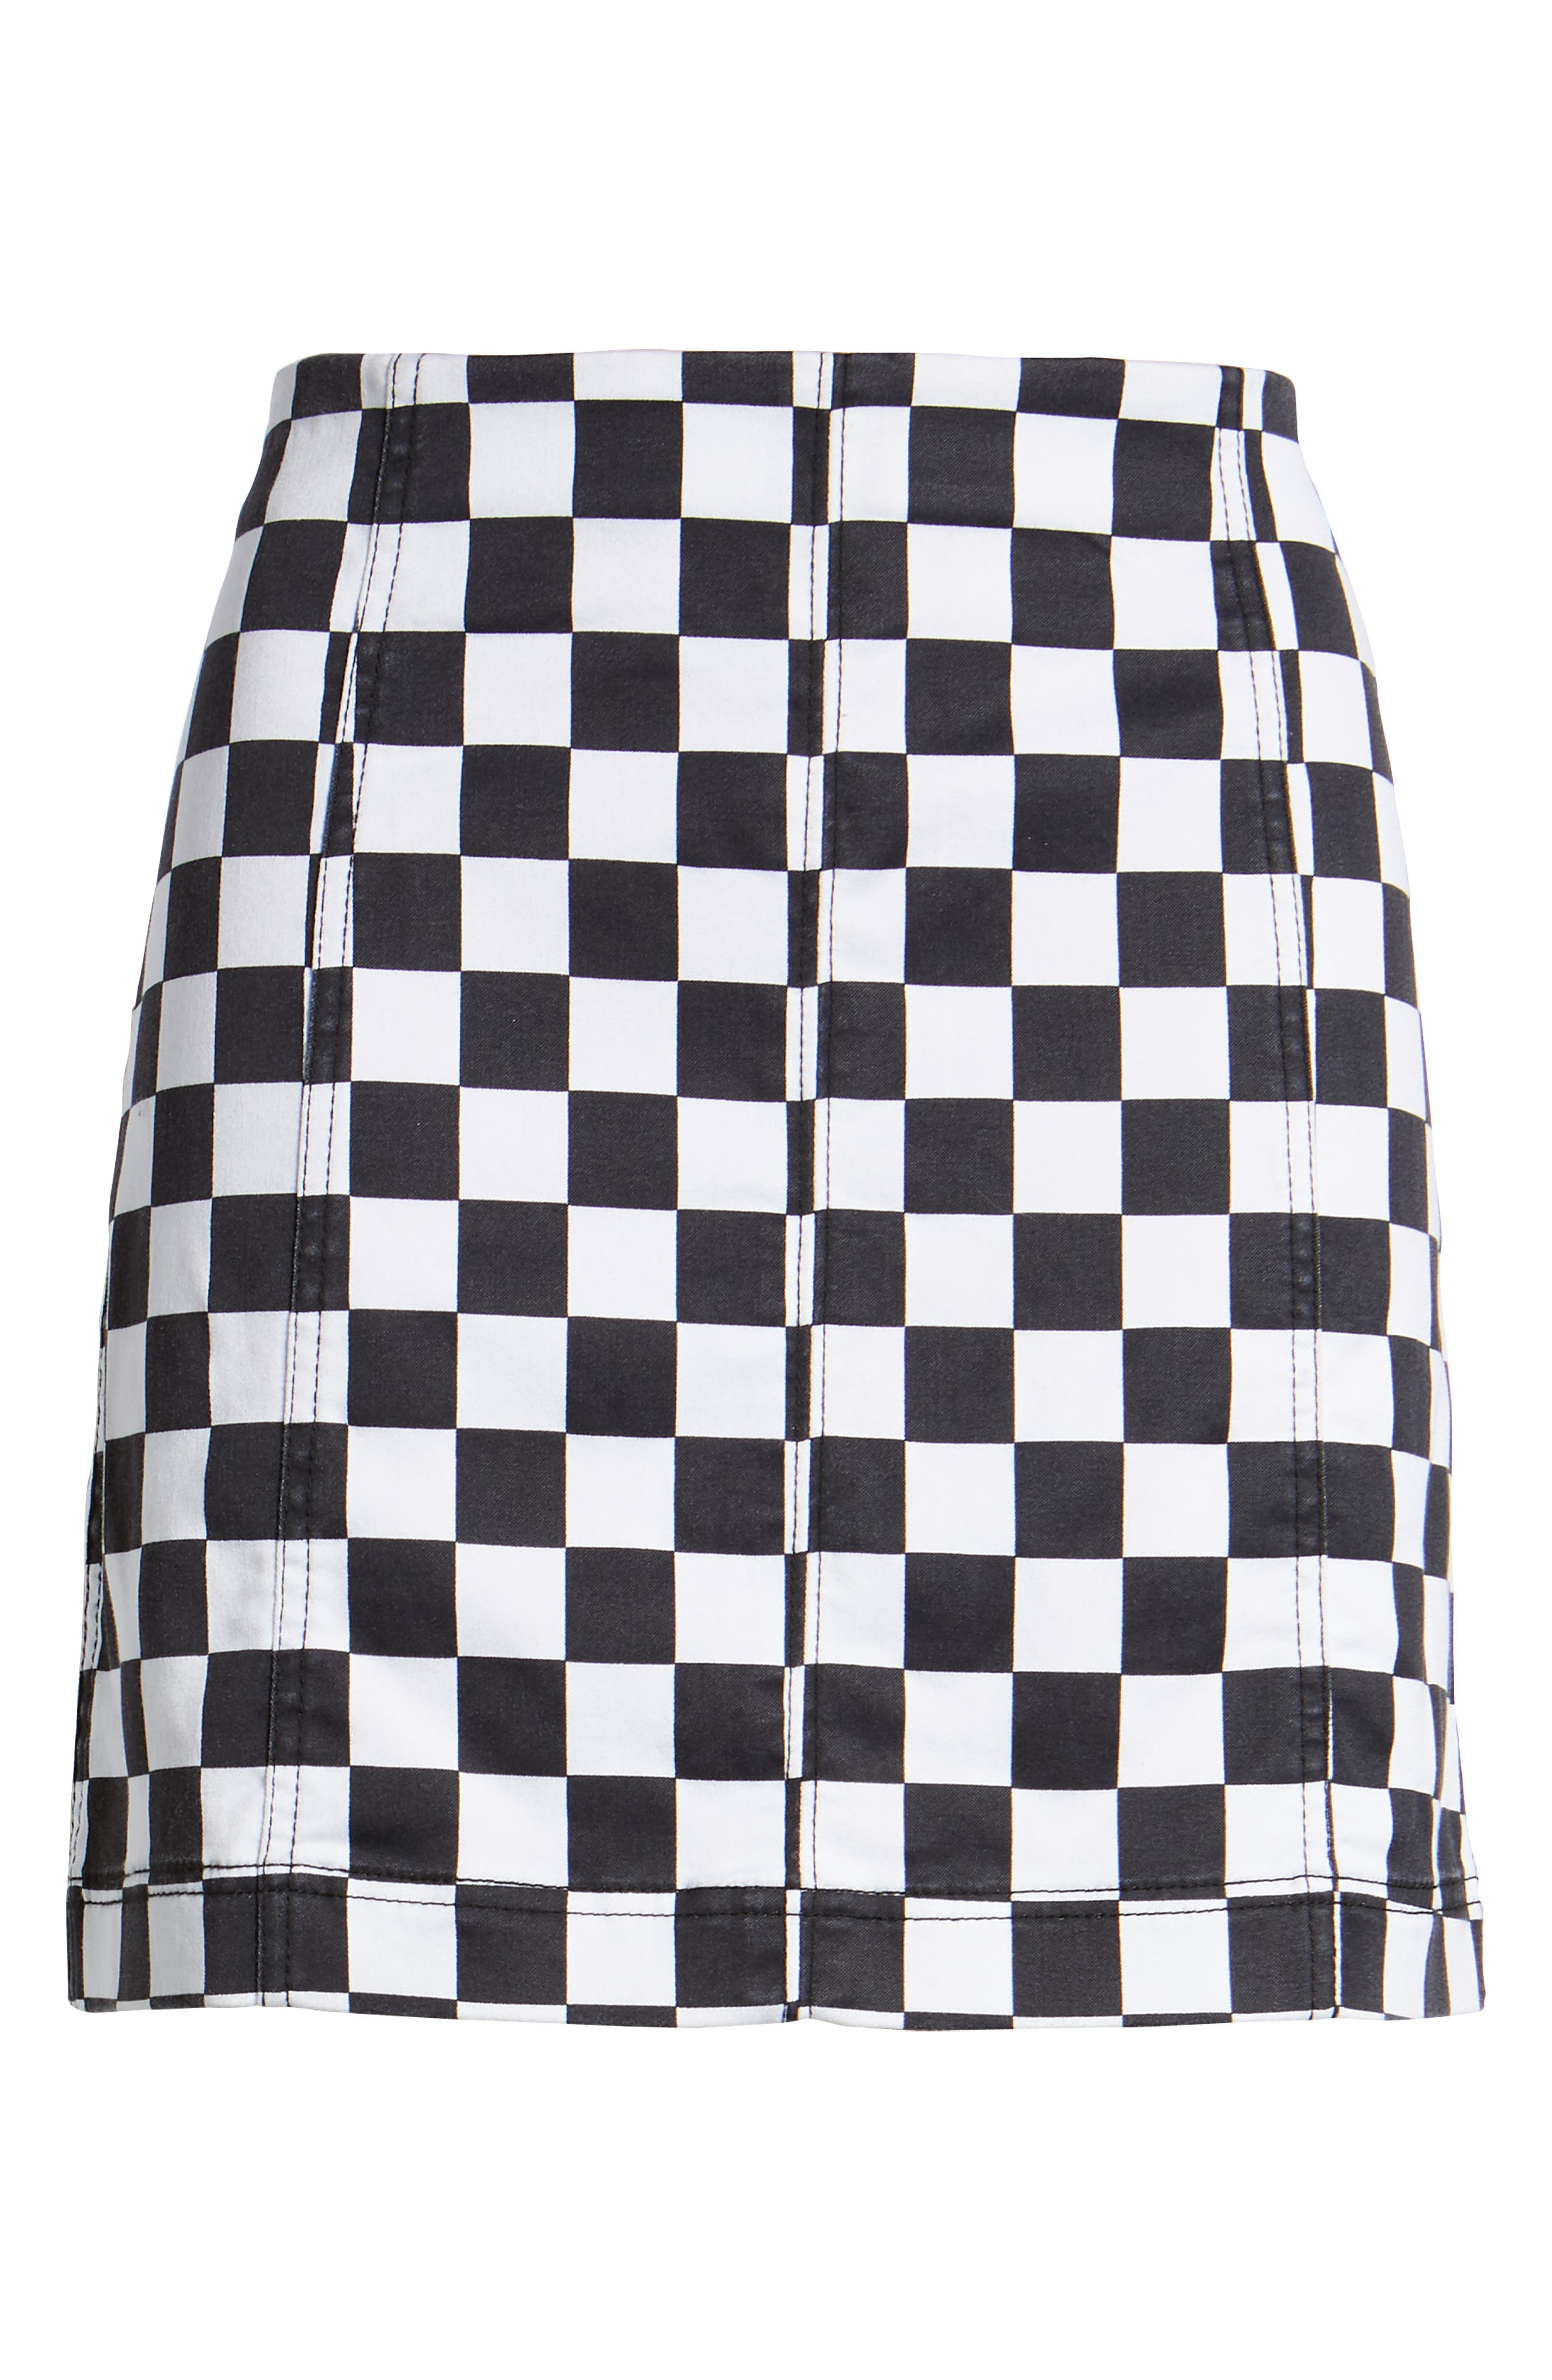 Checkered Denim Miniskirt,                             Alternate thumbnail 6, color,                             Black/ White Checkered